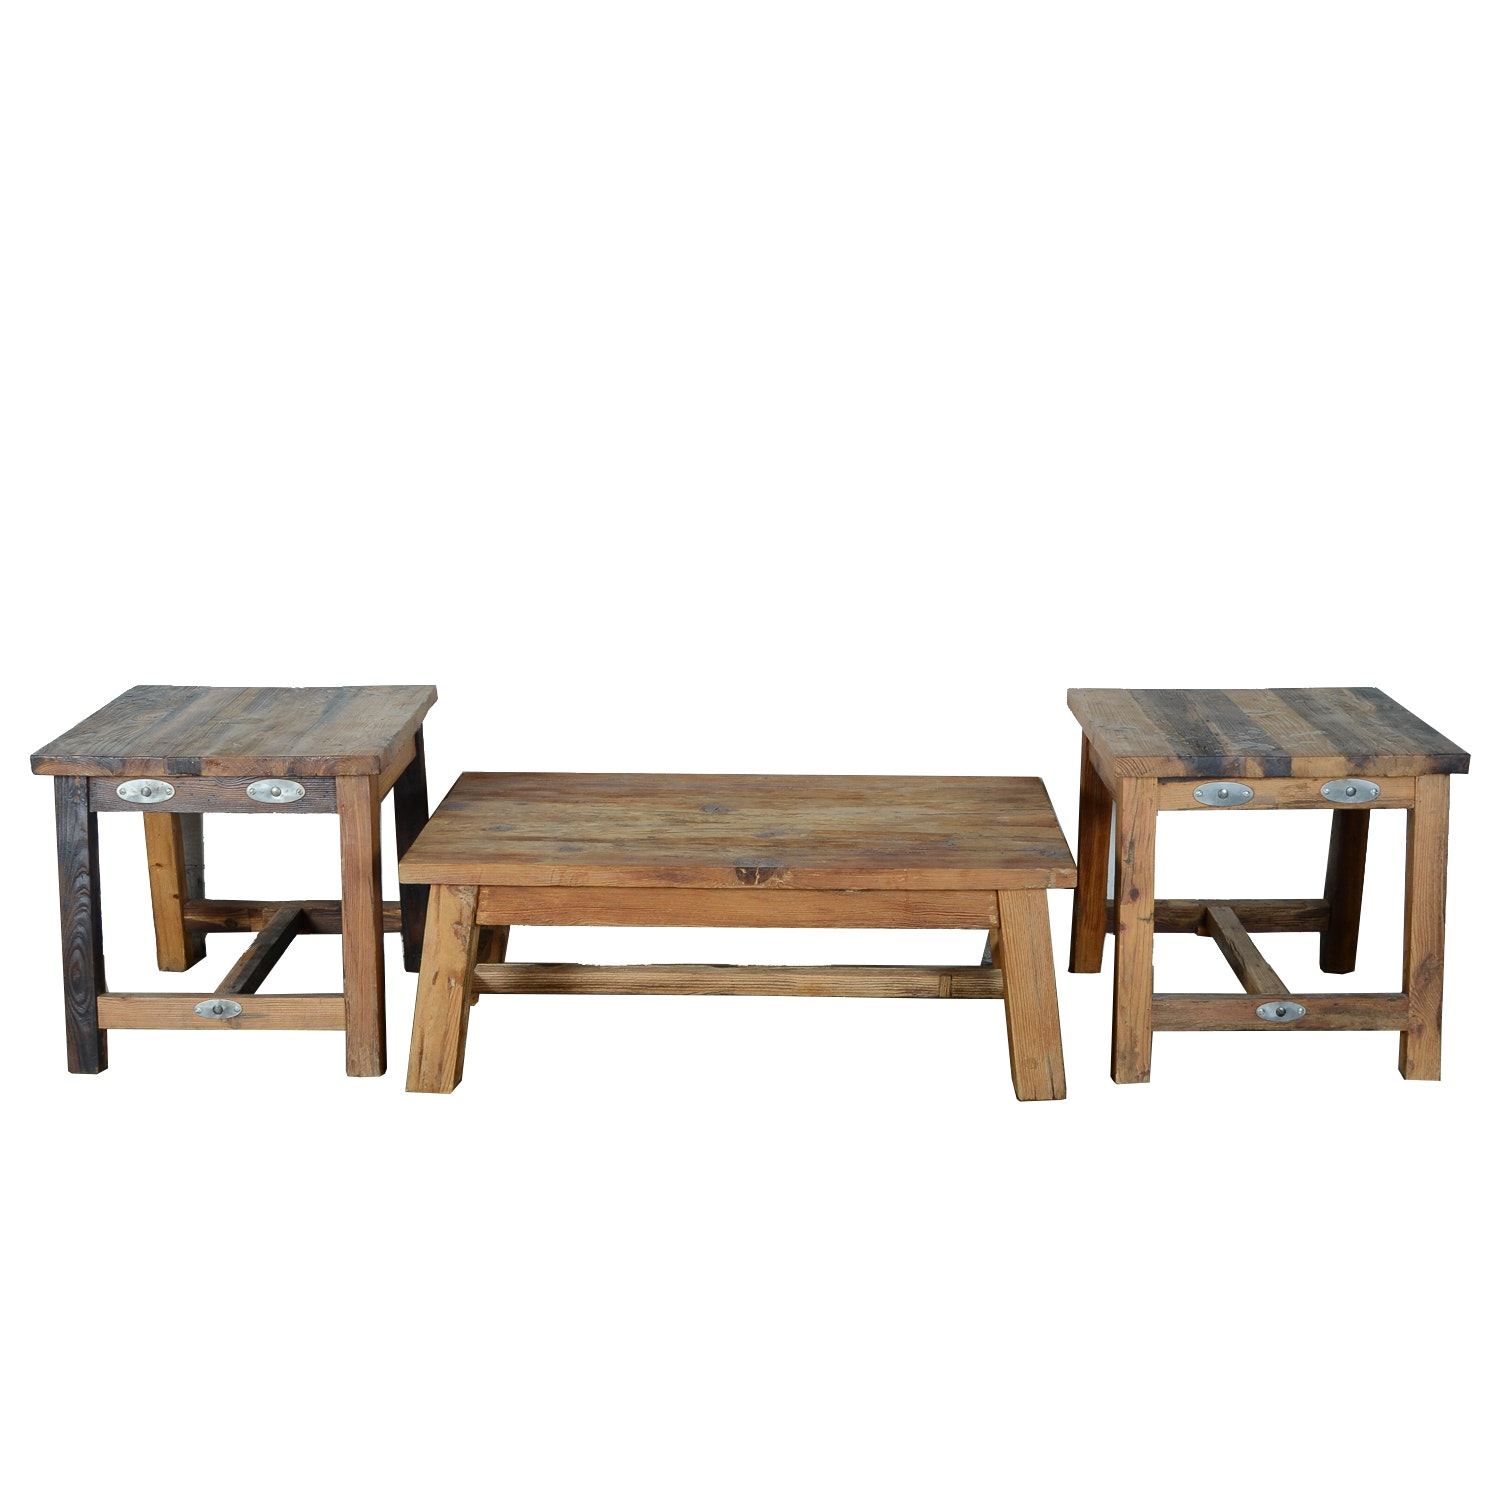 Rustic Pine Coffee Table And Two End Tables ...